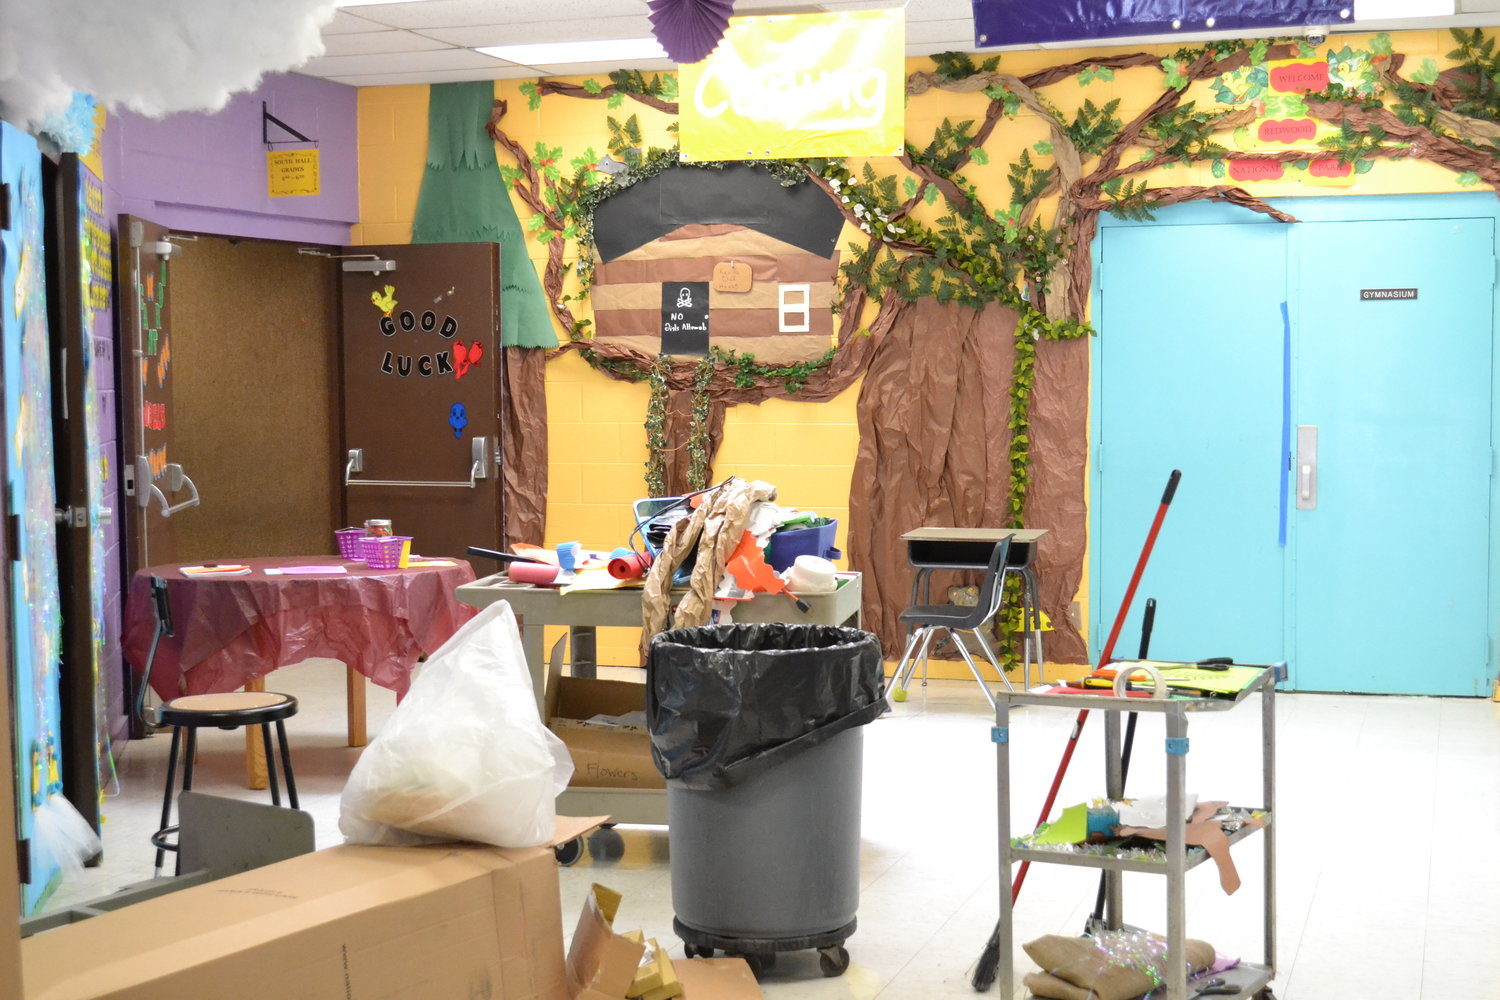 Volunteers worked Saturday cleaning up Parrish Elementary School before students return later this month.